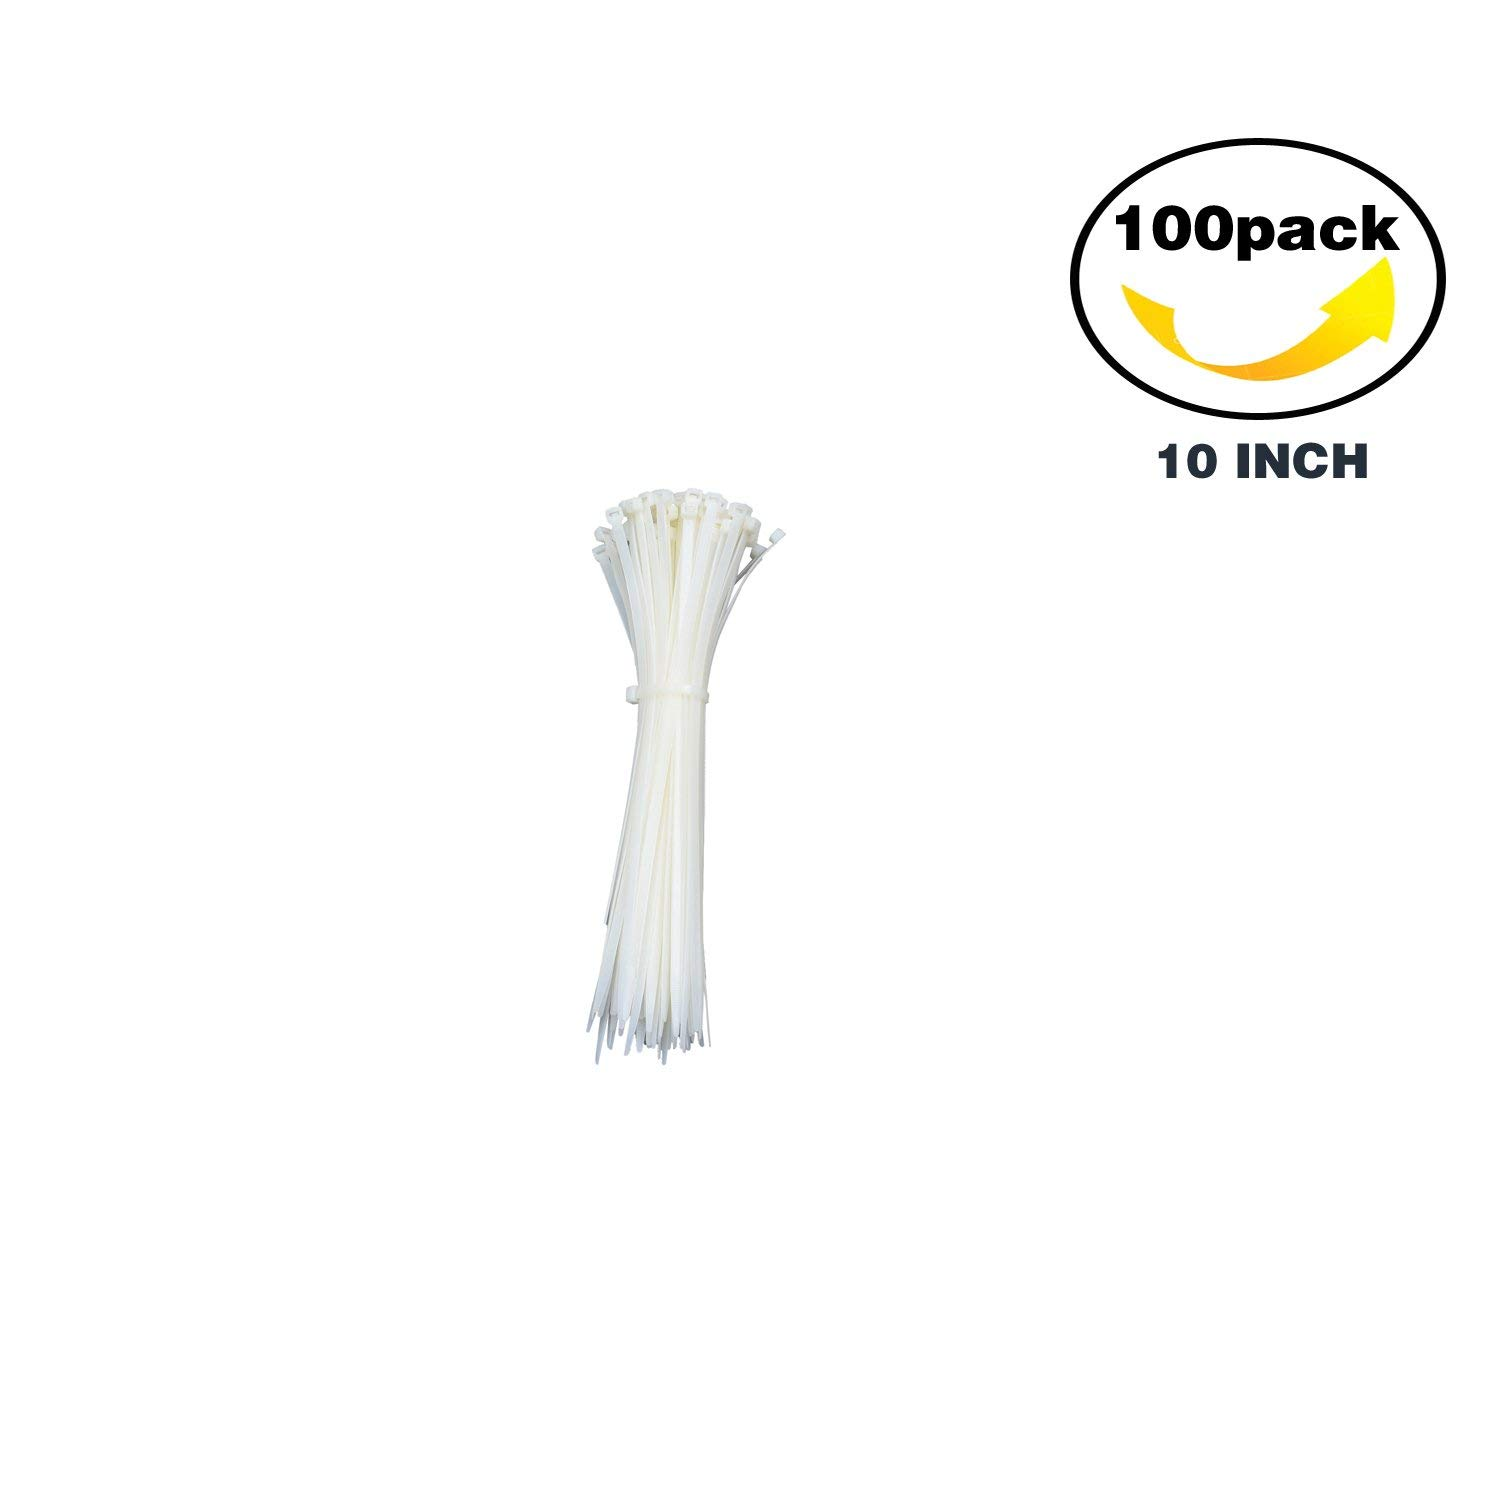 KUIYN Industrial Zip Ties,Self Locking Nylon Cable Ties,Heavy Duty Zip Cable Ties, Multi-Purpose Strong Wire Ties, Cable Clips Organizer, Cable Management, 10Inch(100PCS),White